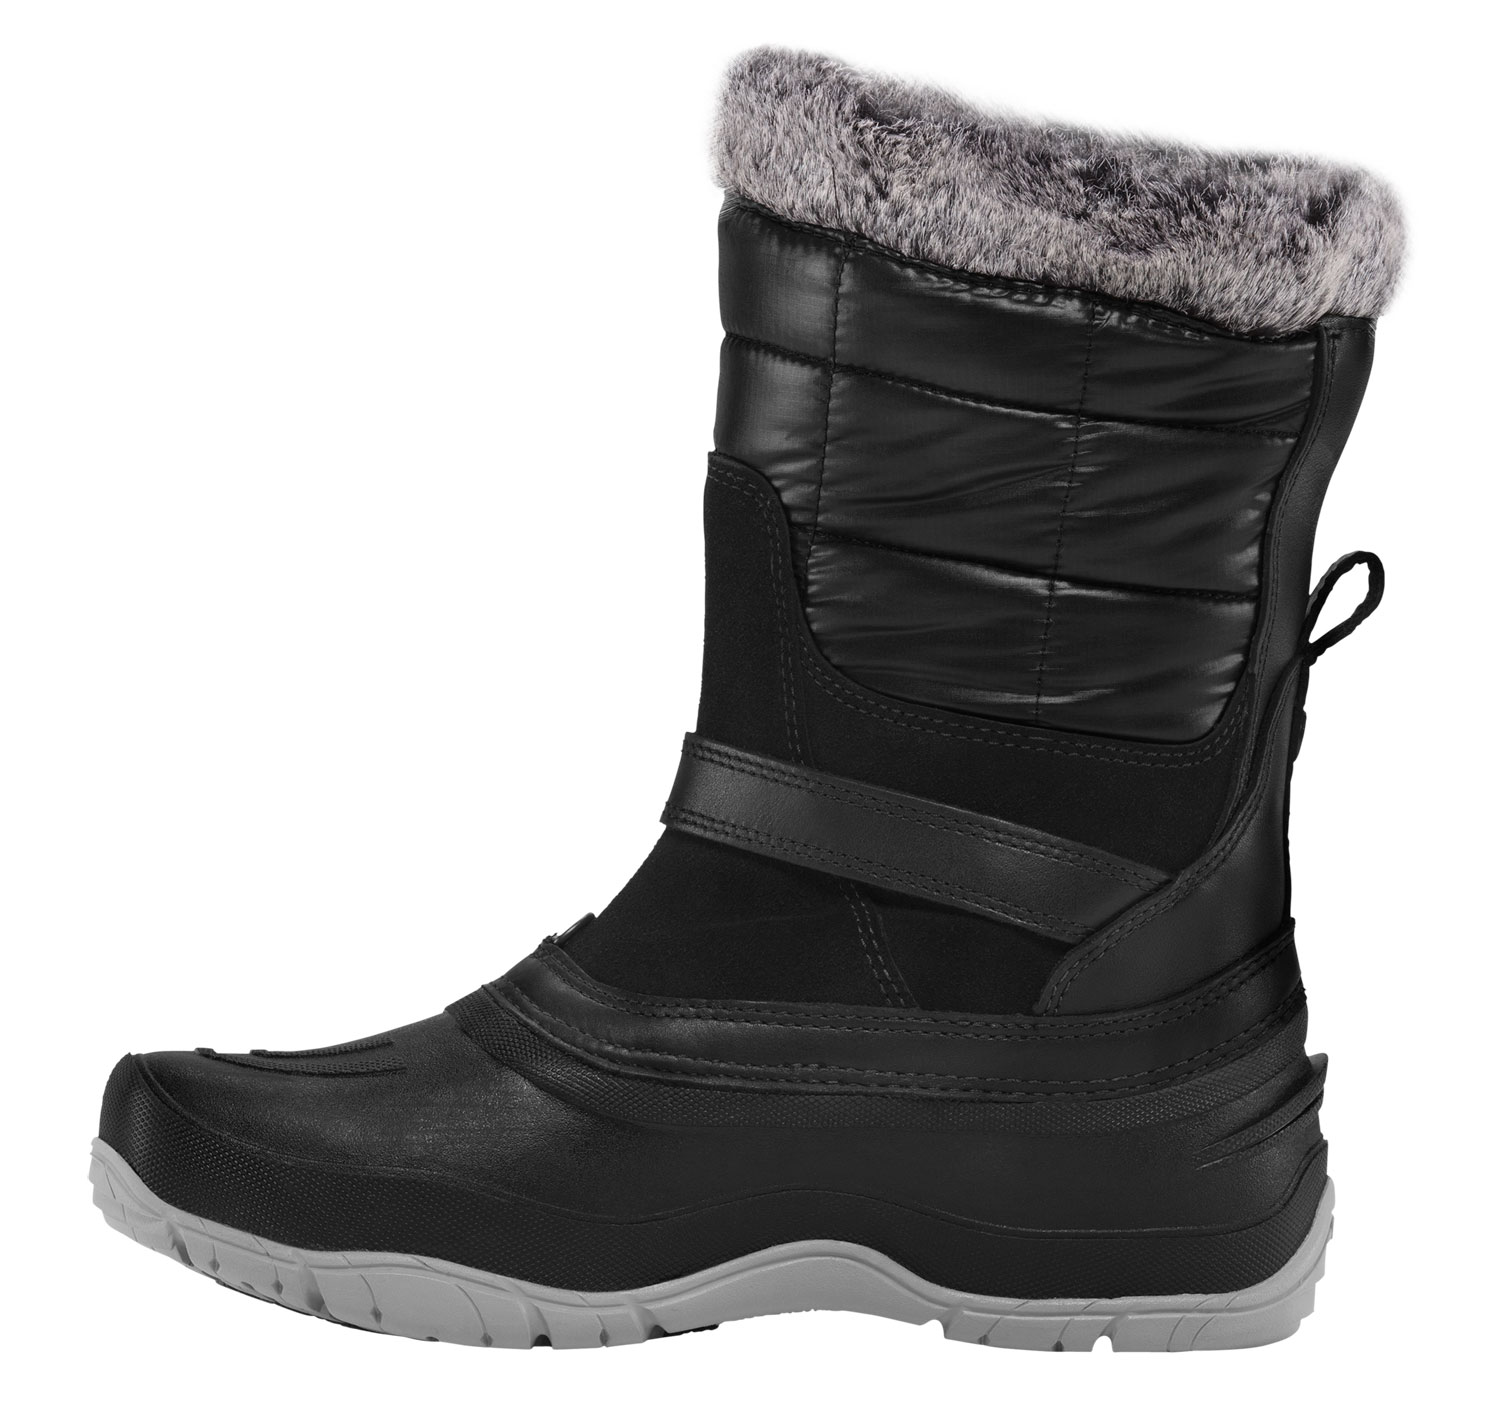 Designed specifically for women and ideal for icy commutes, an easy pull-on warm and waterproof boot made with performance materials and fashion-forward style.Key Features of The North Face Shellista Pull On Boots: Durable, water-resistant, 100% recycled PET ripstop shaft detail Waterproof, BLC-compliant full-grain and suede lather upper trims Cemented and seam-sealed waterproof construction 200g PrimaLoft Eco insulation Faux fur collar detail Anatomically engineered, injection-molded, waterproof TPR shell with forefoot flex grooves Dual-density internal midsole with three-quarter-length nylon shank Durable TNF Winter Grip rubber outsole base with IcePick temperature-sensitive lugs for superior winter traction - $93.95